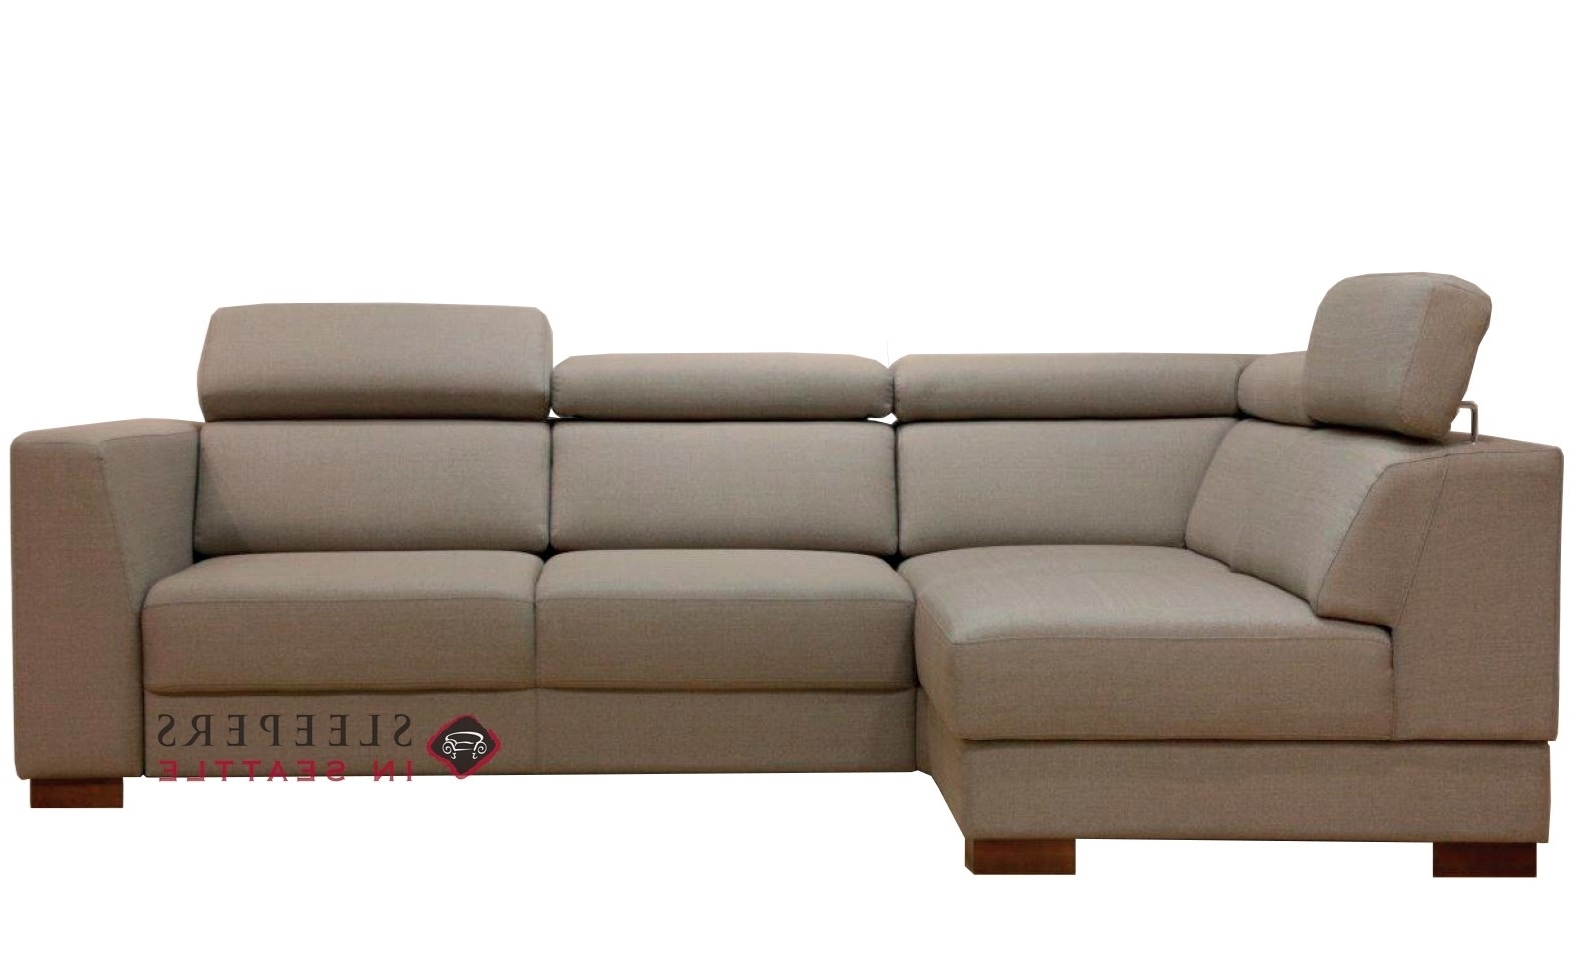 Sleeper Chaises For Most Up To Date Customize And Personalize Halti Chaise Sectional Fabric Sofa (View 12 of 15)